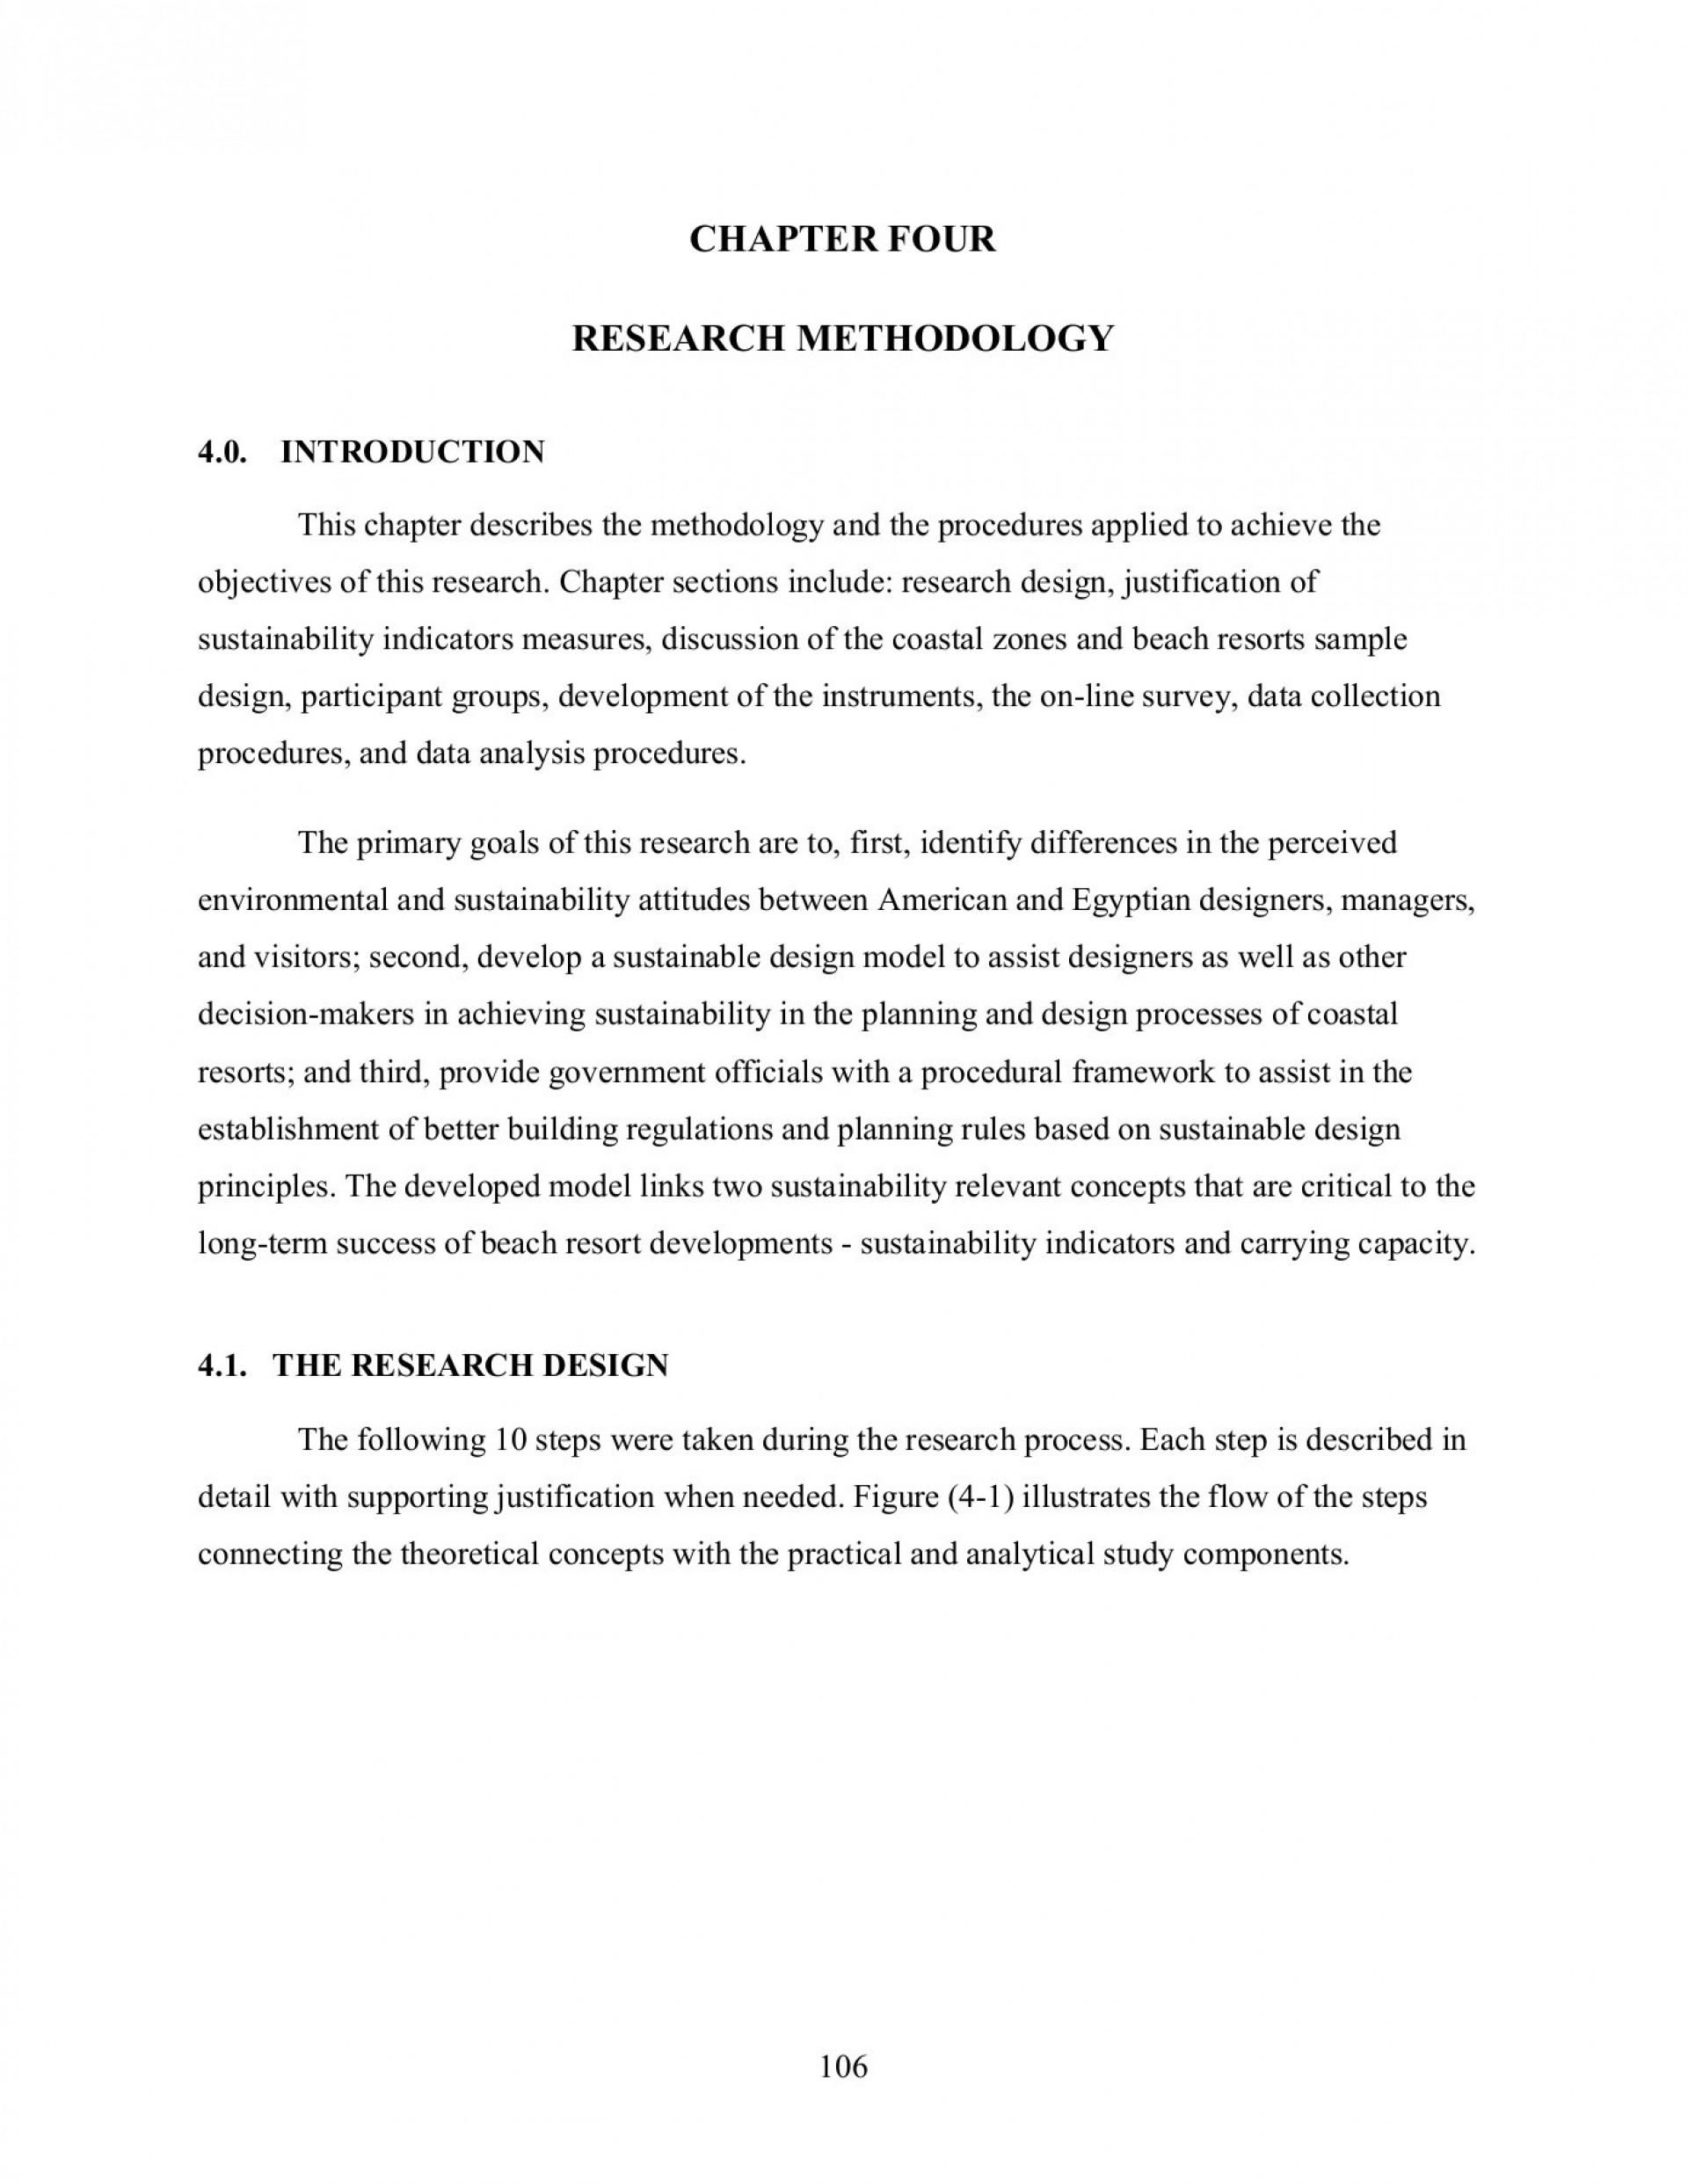 013 Methodology Sample For Research Impressive Paper Writing Pdf 1920